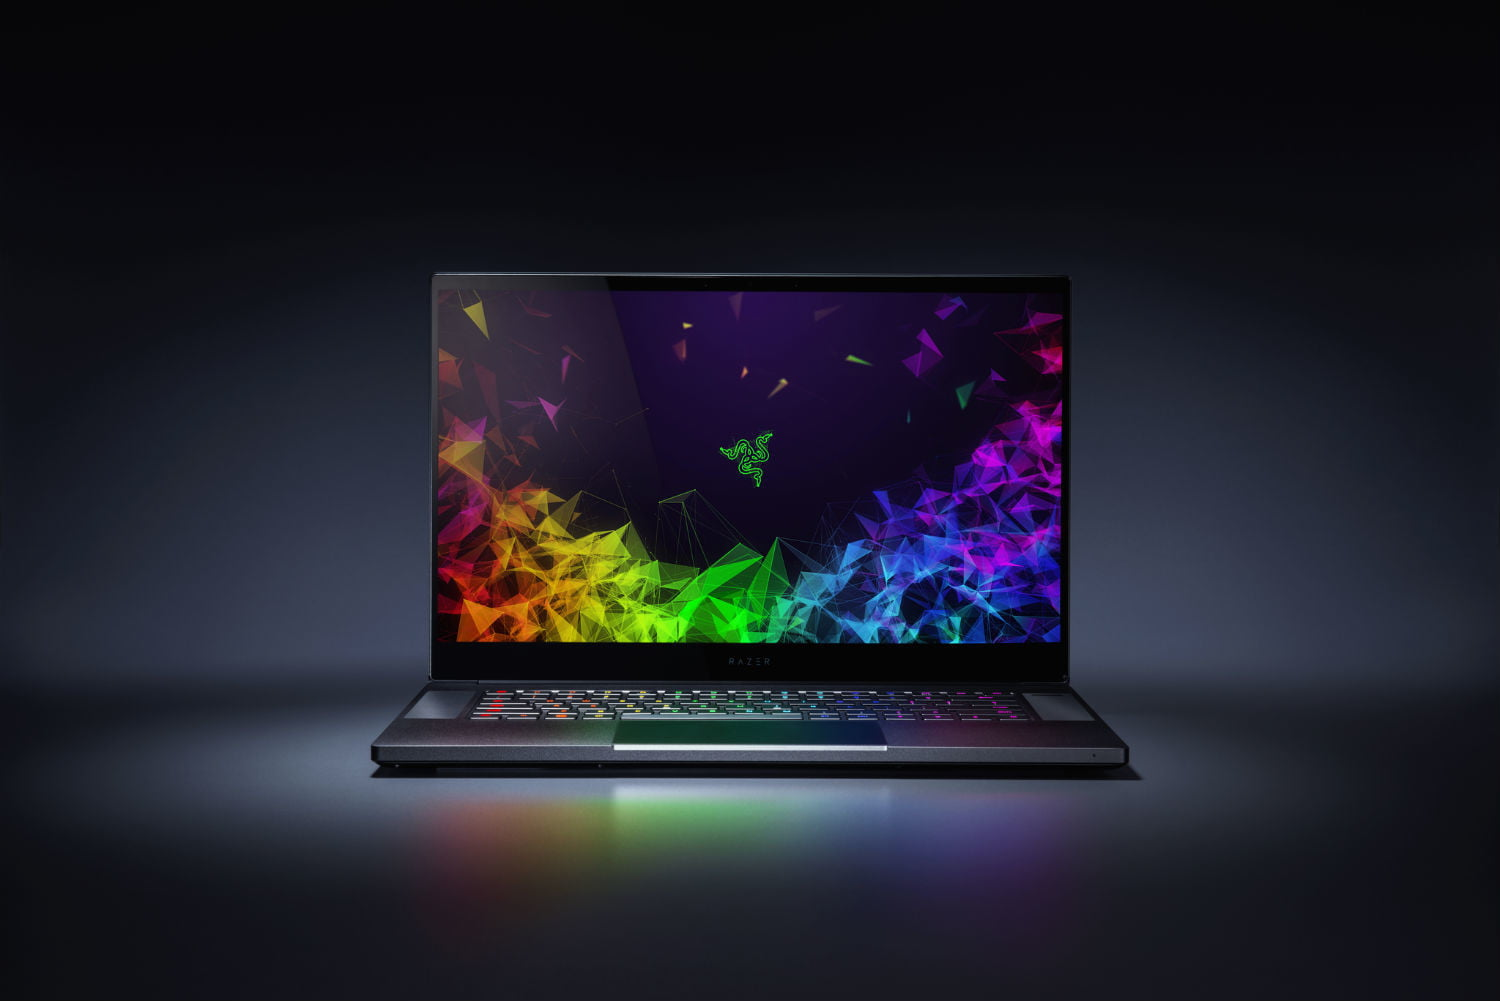 5 reasons why the new Razer Blade looks amazing